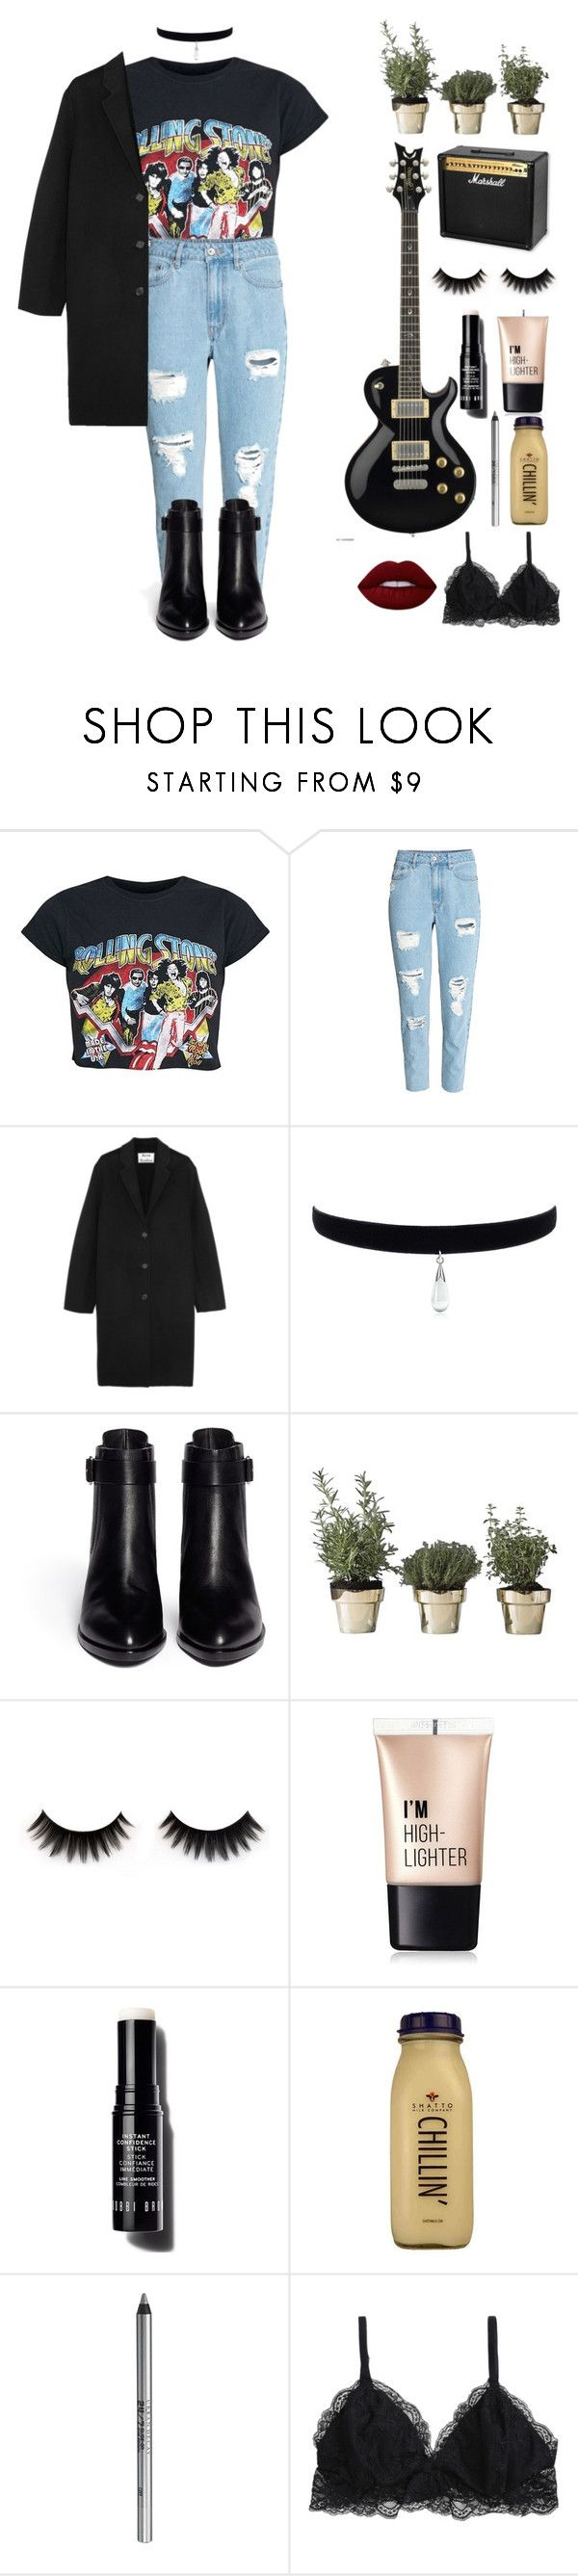 """The rolling stones"" by i-am-cool-girl ❤ liked on Polyvore featuring H&M, Acne Studios, Alexander Wang, Skultuna, Charlotte Russe, Bobbi Brown Cosmetics, CO, Urban Decay and Lime Crime"